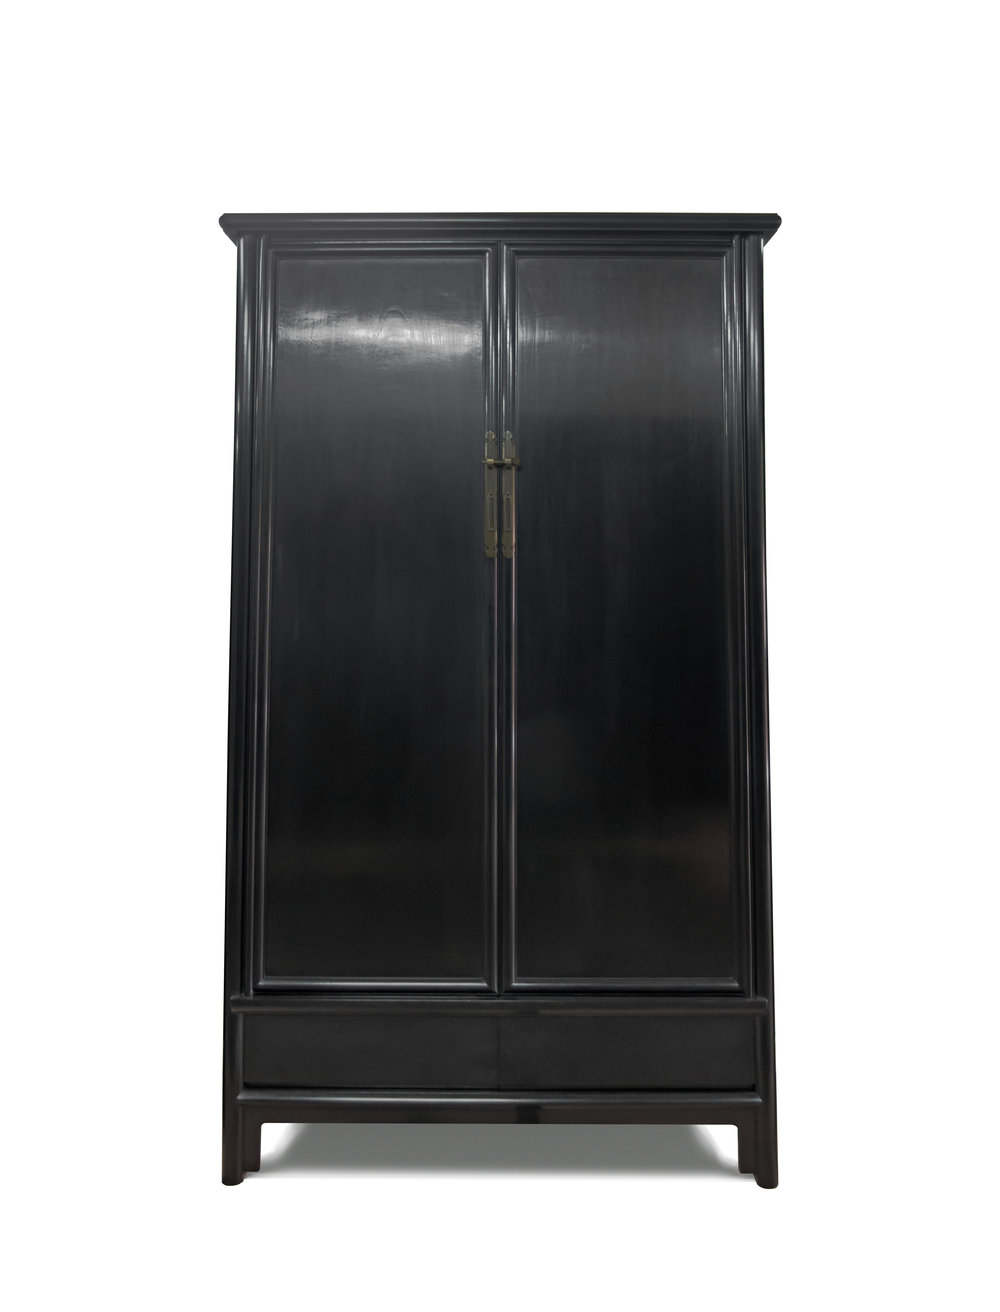 ....chinese furniture | mandarin oriental armoire..中式家具 | 文华东方大柜....